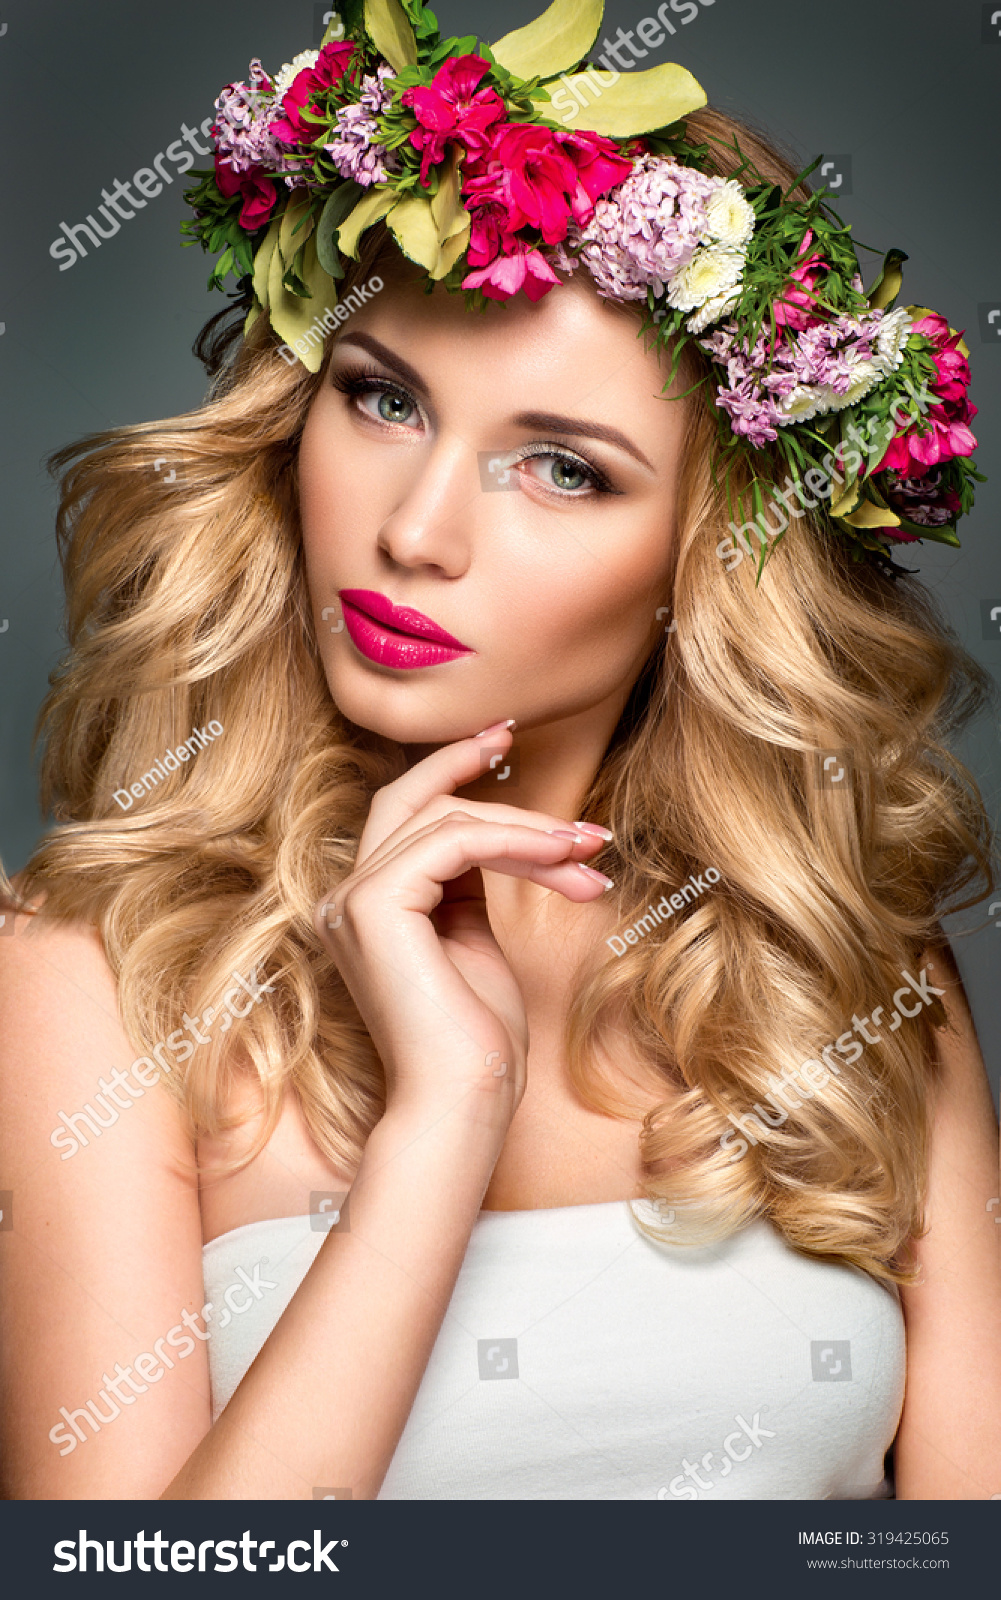 Beautiful woman flowers hair stock photo 319425065 shutterstock beautiful woman with flowers in hair dhlflorist Gallery